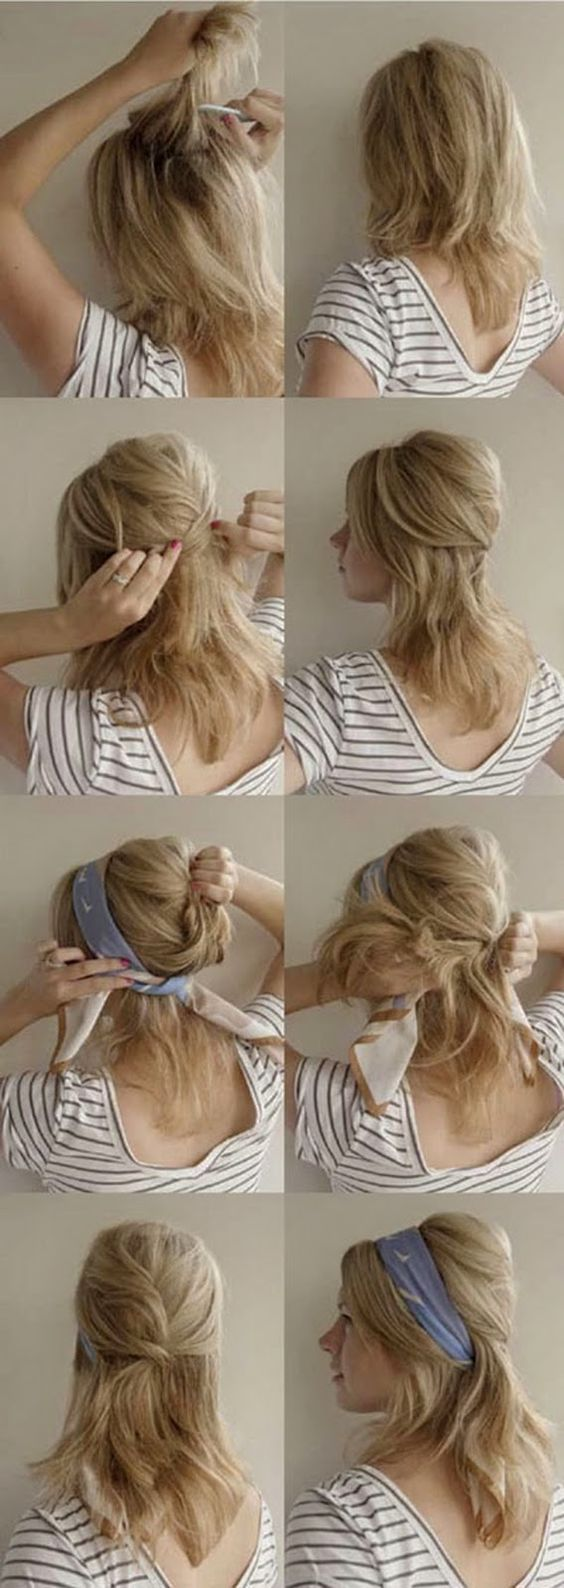 Hair + Scarf @Nikki Lanser Here is how you could do it with you hair :